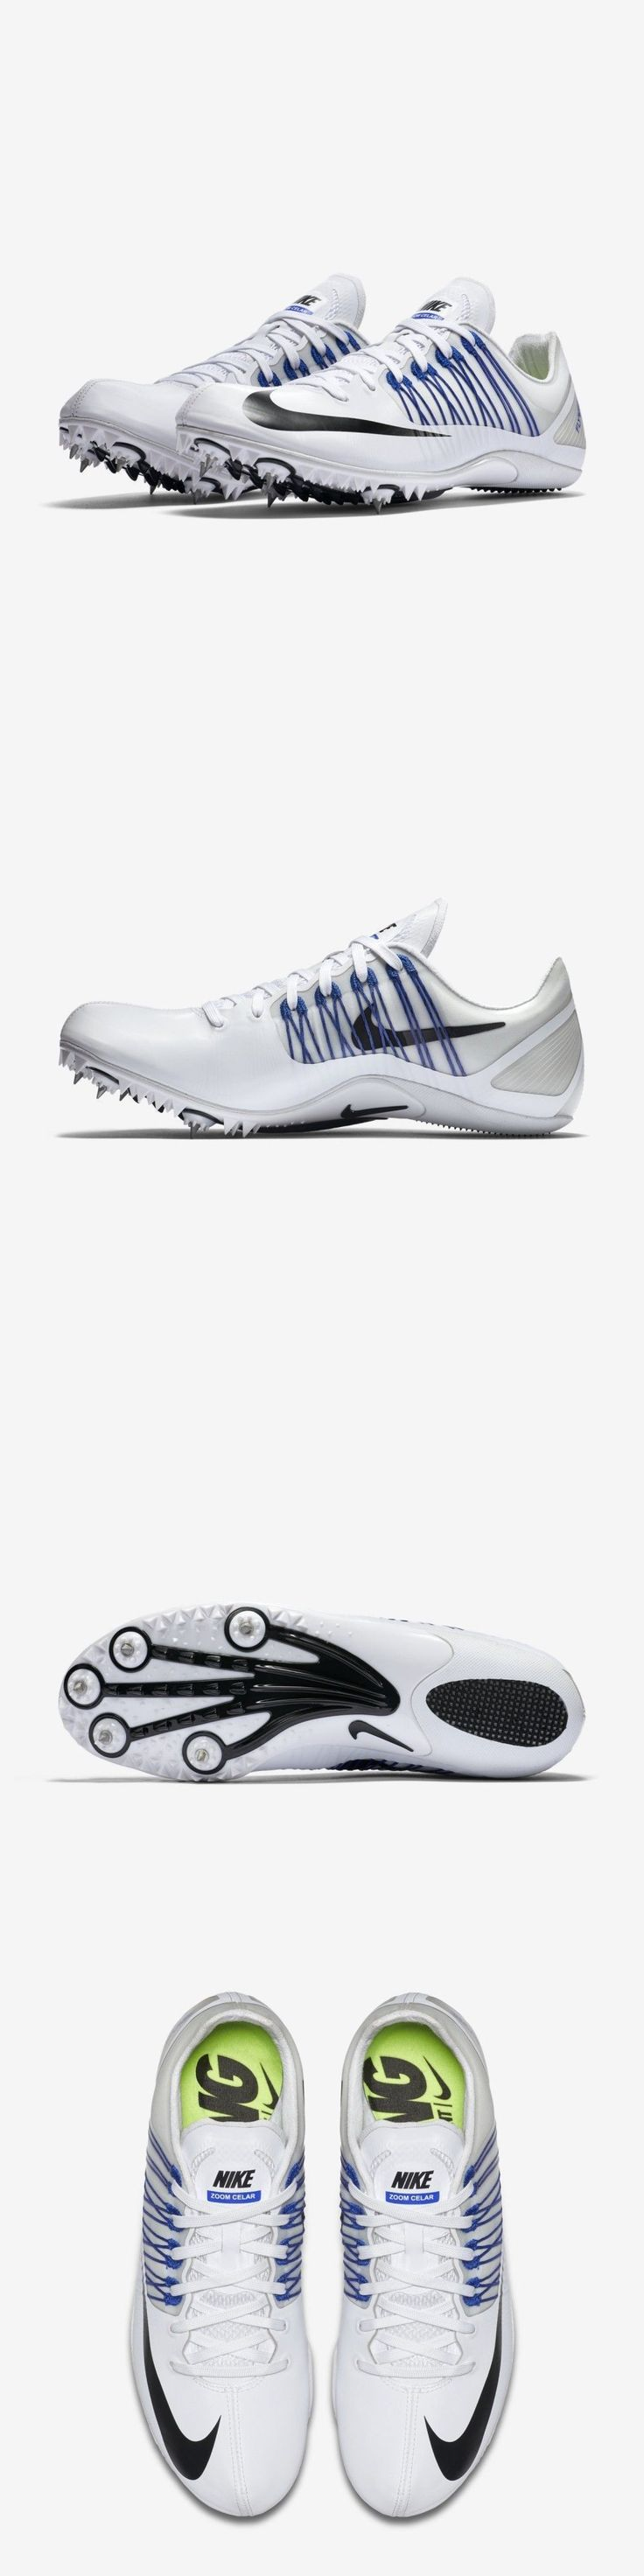 Track and Field 106981: Nike Zoom Celar 5 Track And Field Shoes Spikes Men S Size 6 ( Women 7.5 ) White -> BUY IT NOW ONLY: $36.95 on eBay!